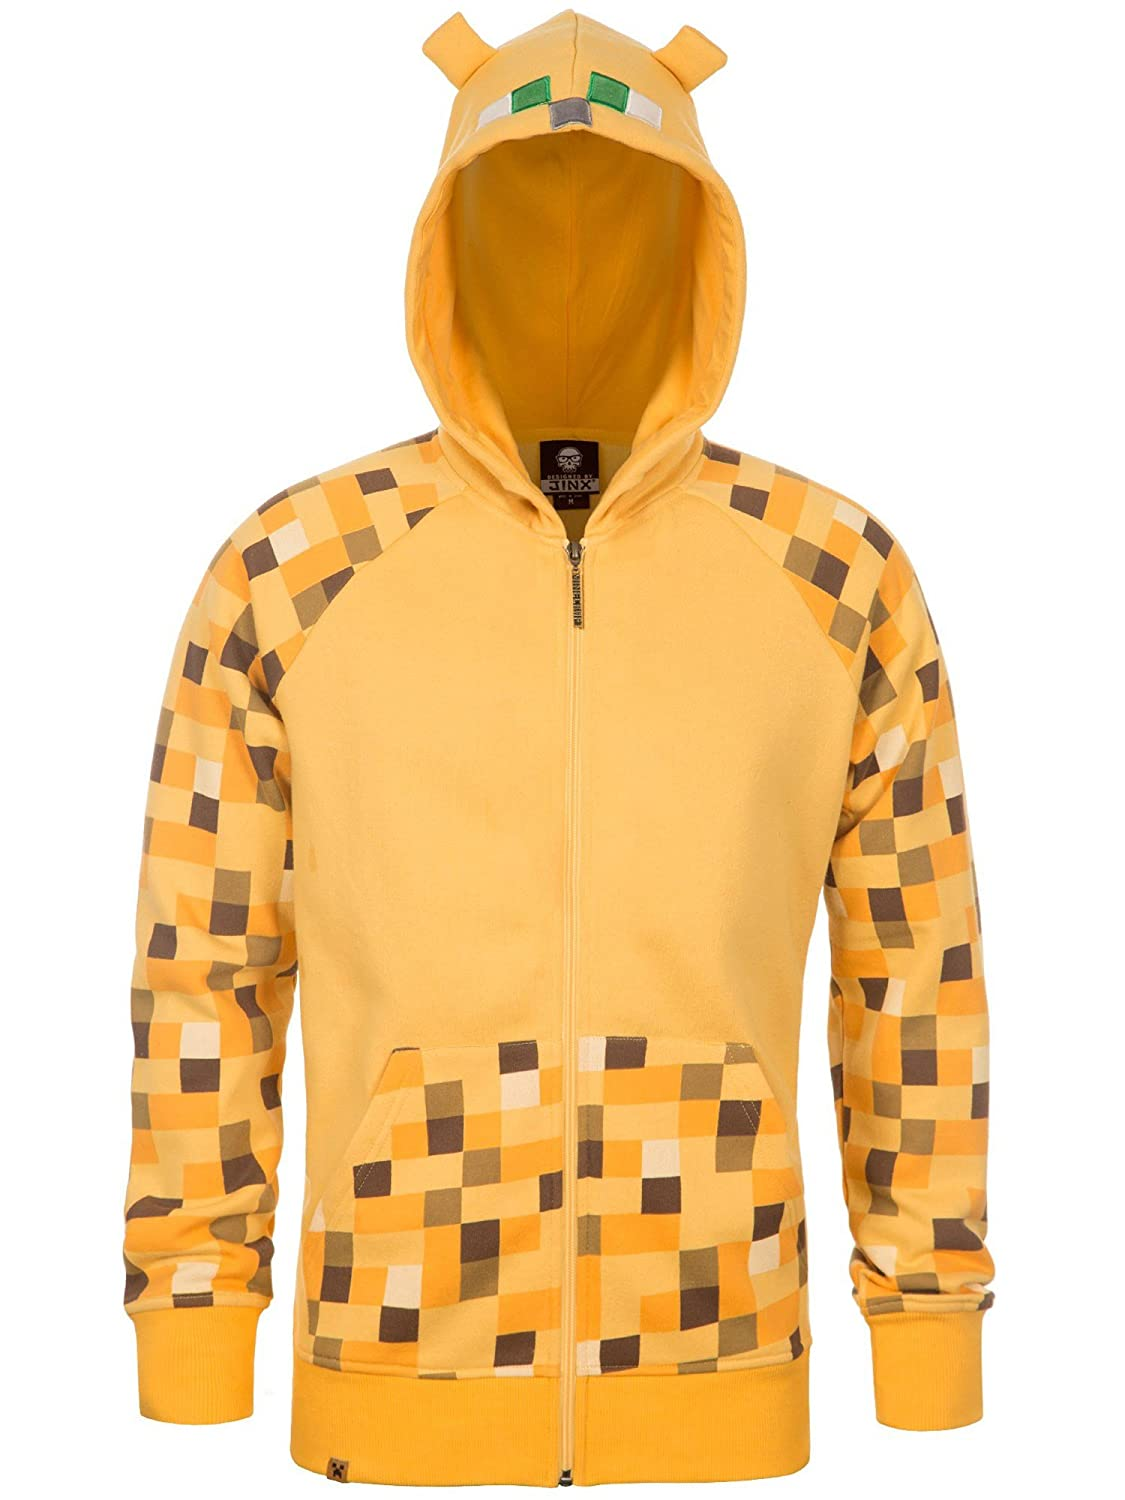 JINX Minecraft Big Boys' Ocelot Premium Zip-Up Hoodie MJMC-05035Y-YW